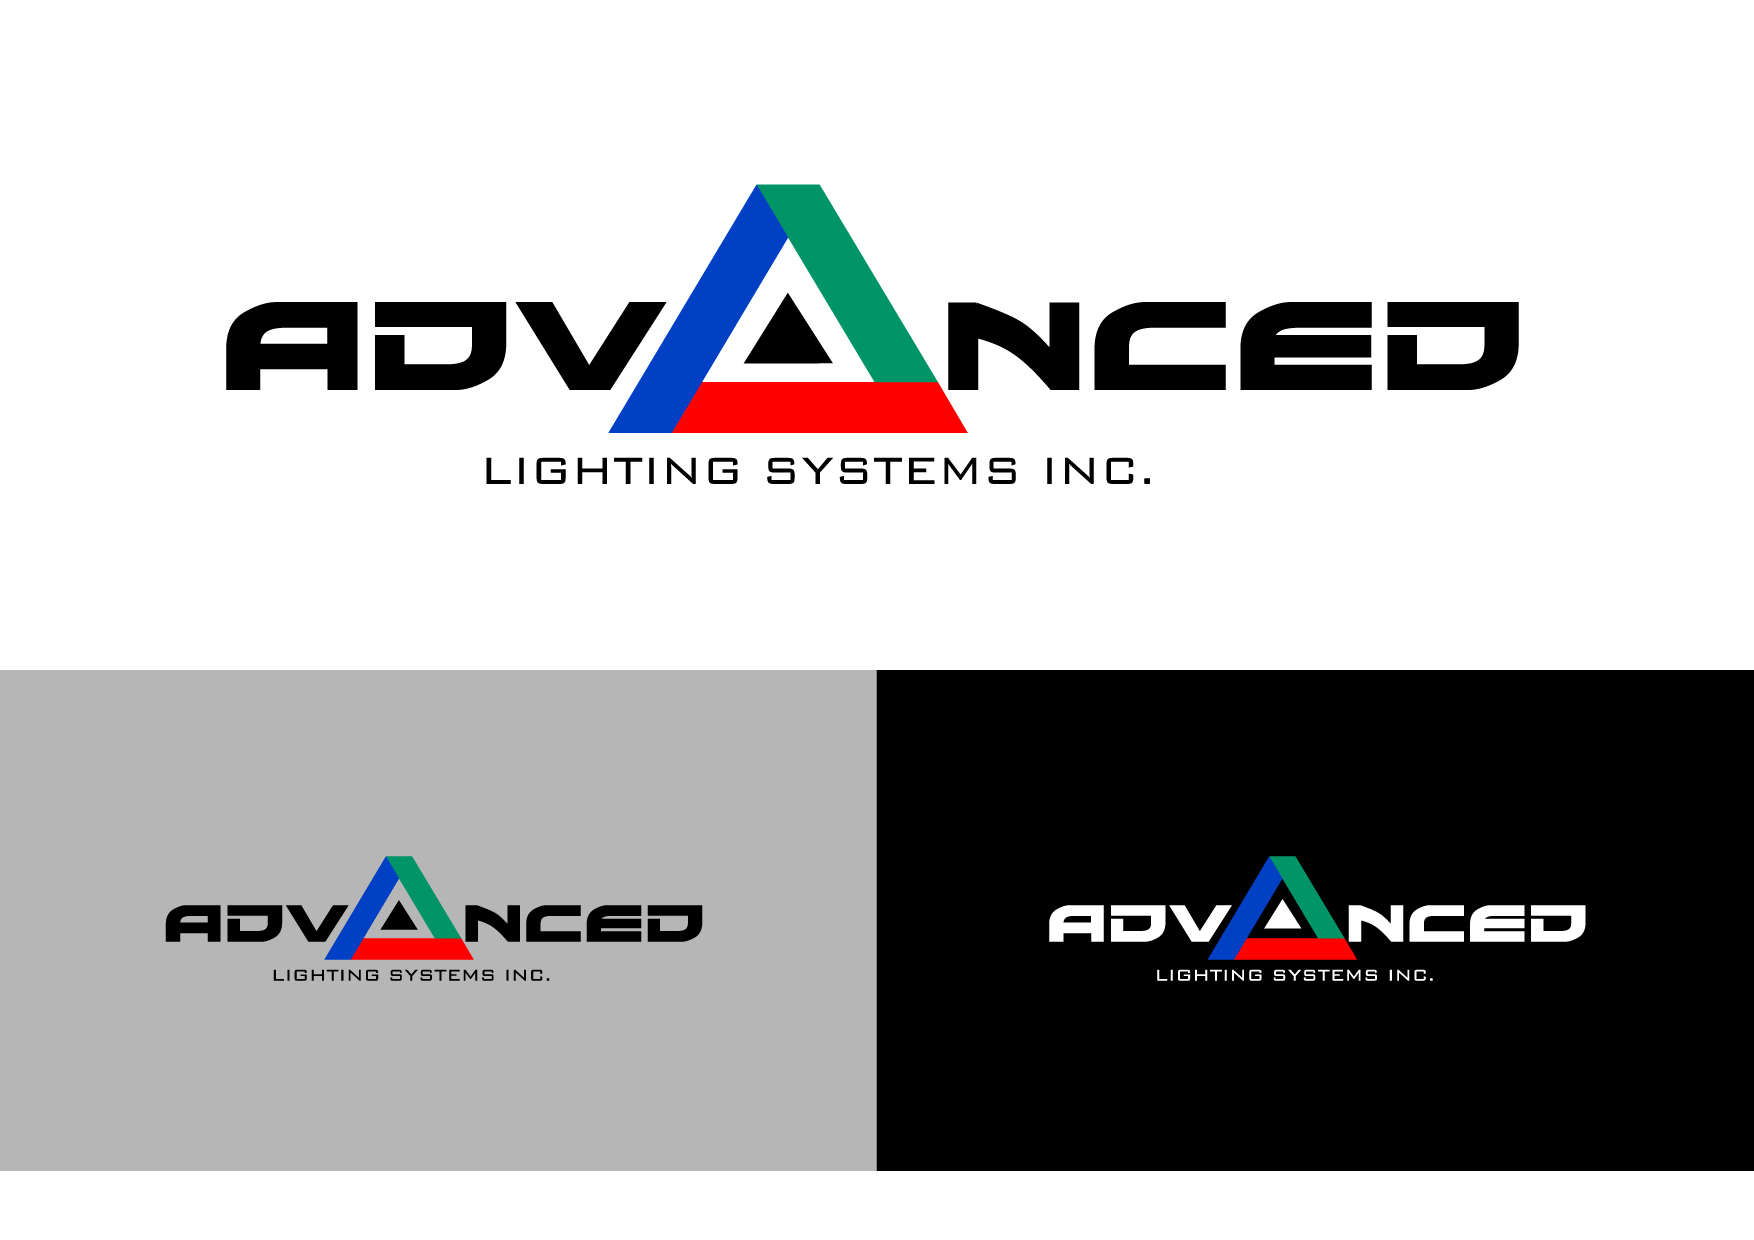 Logo Design by Wilfredo Mendoza - Entry No. 71 in the Logo Design Contest New Logo Design Needed for  Company Advanced Lighting Systems Inc..